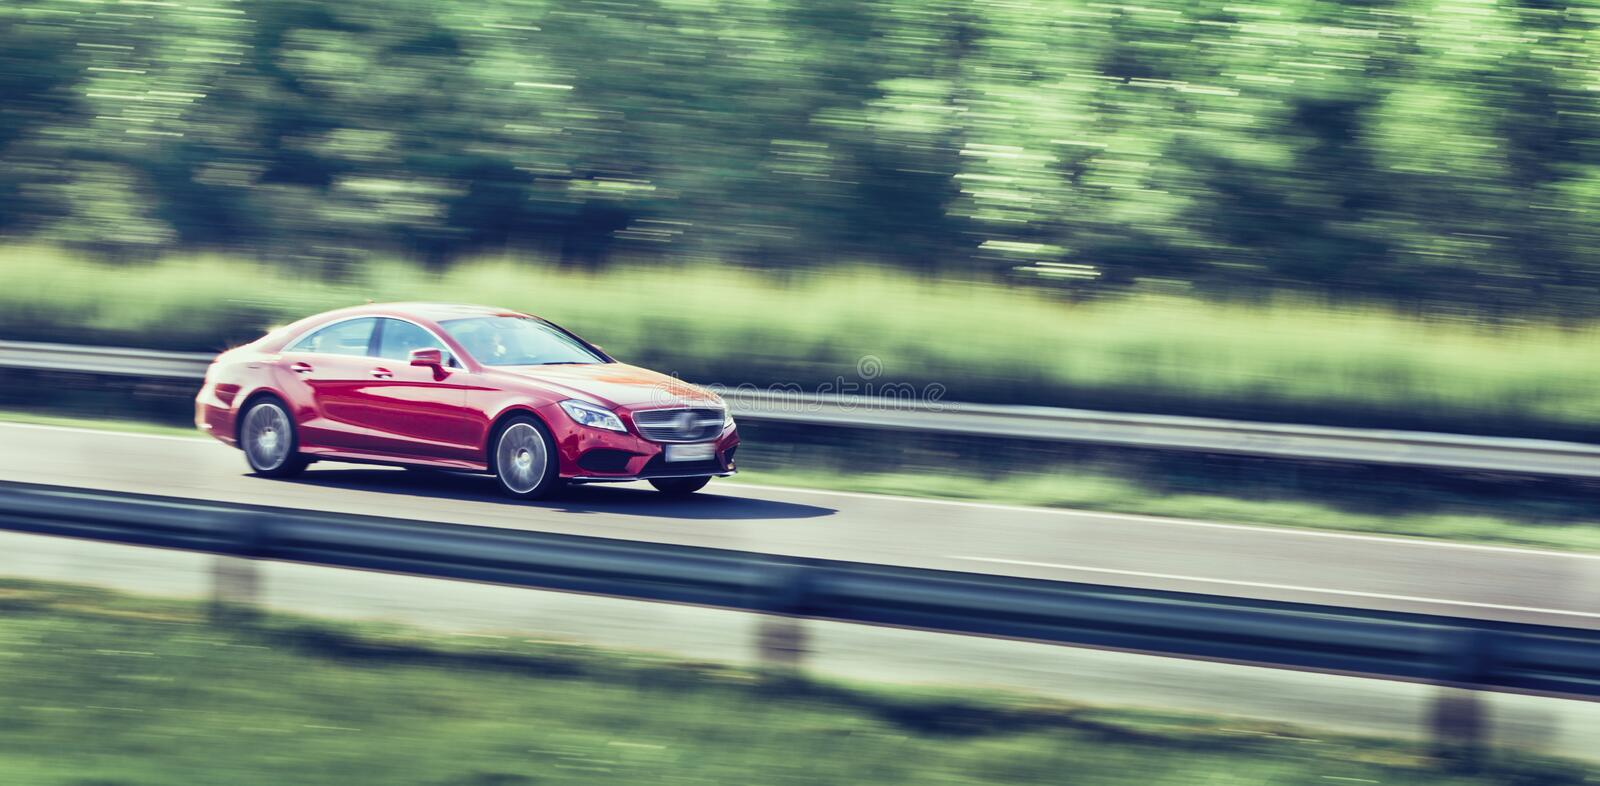 Car driving fast on highway motion blur. Image royalty free stock photos